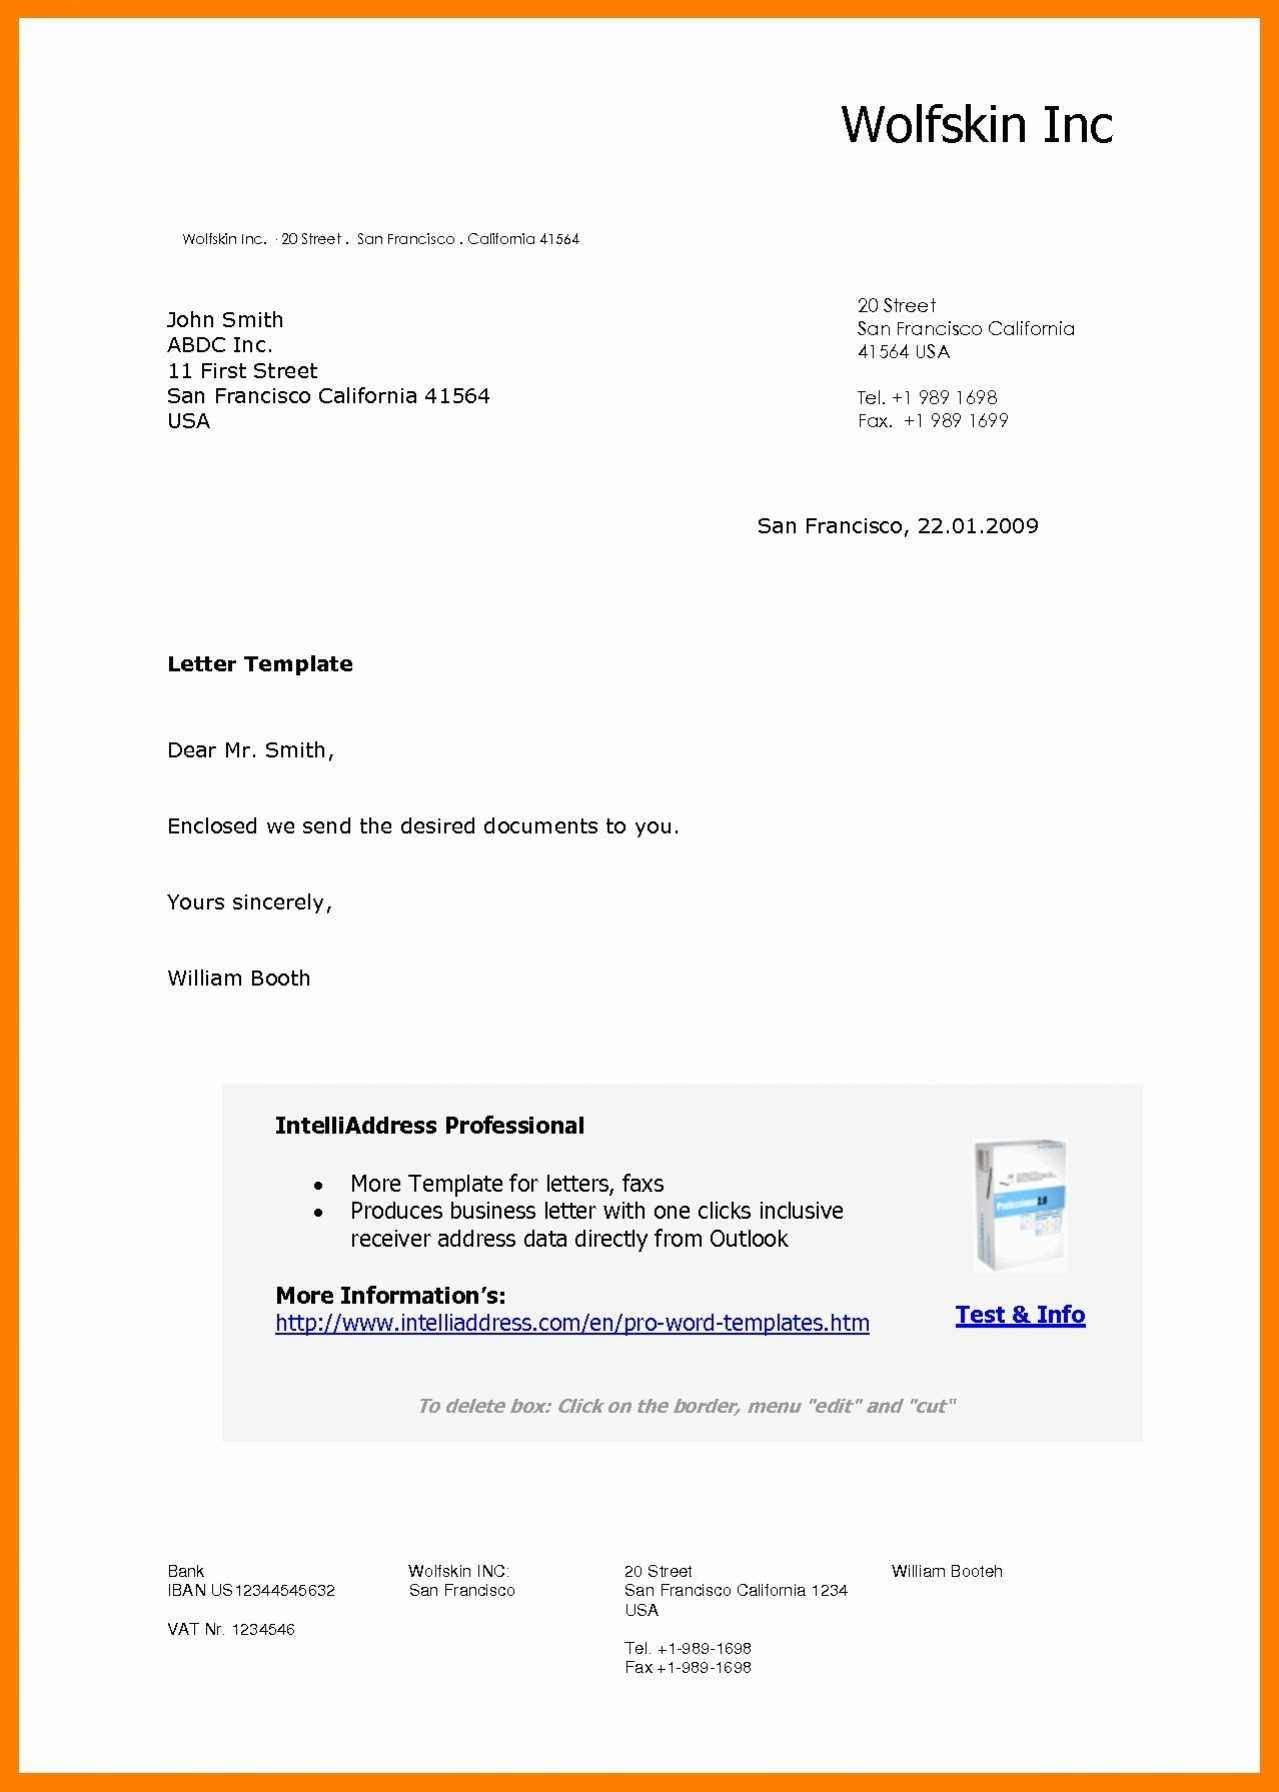 Letter From Santa Free Template Word - Beautiful Free Cover Letter Template Word